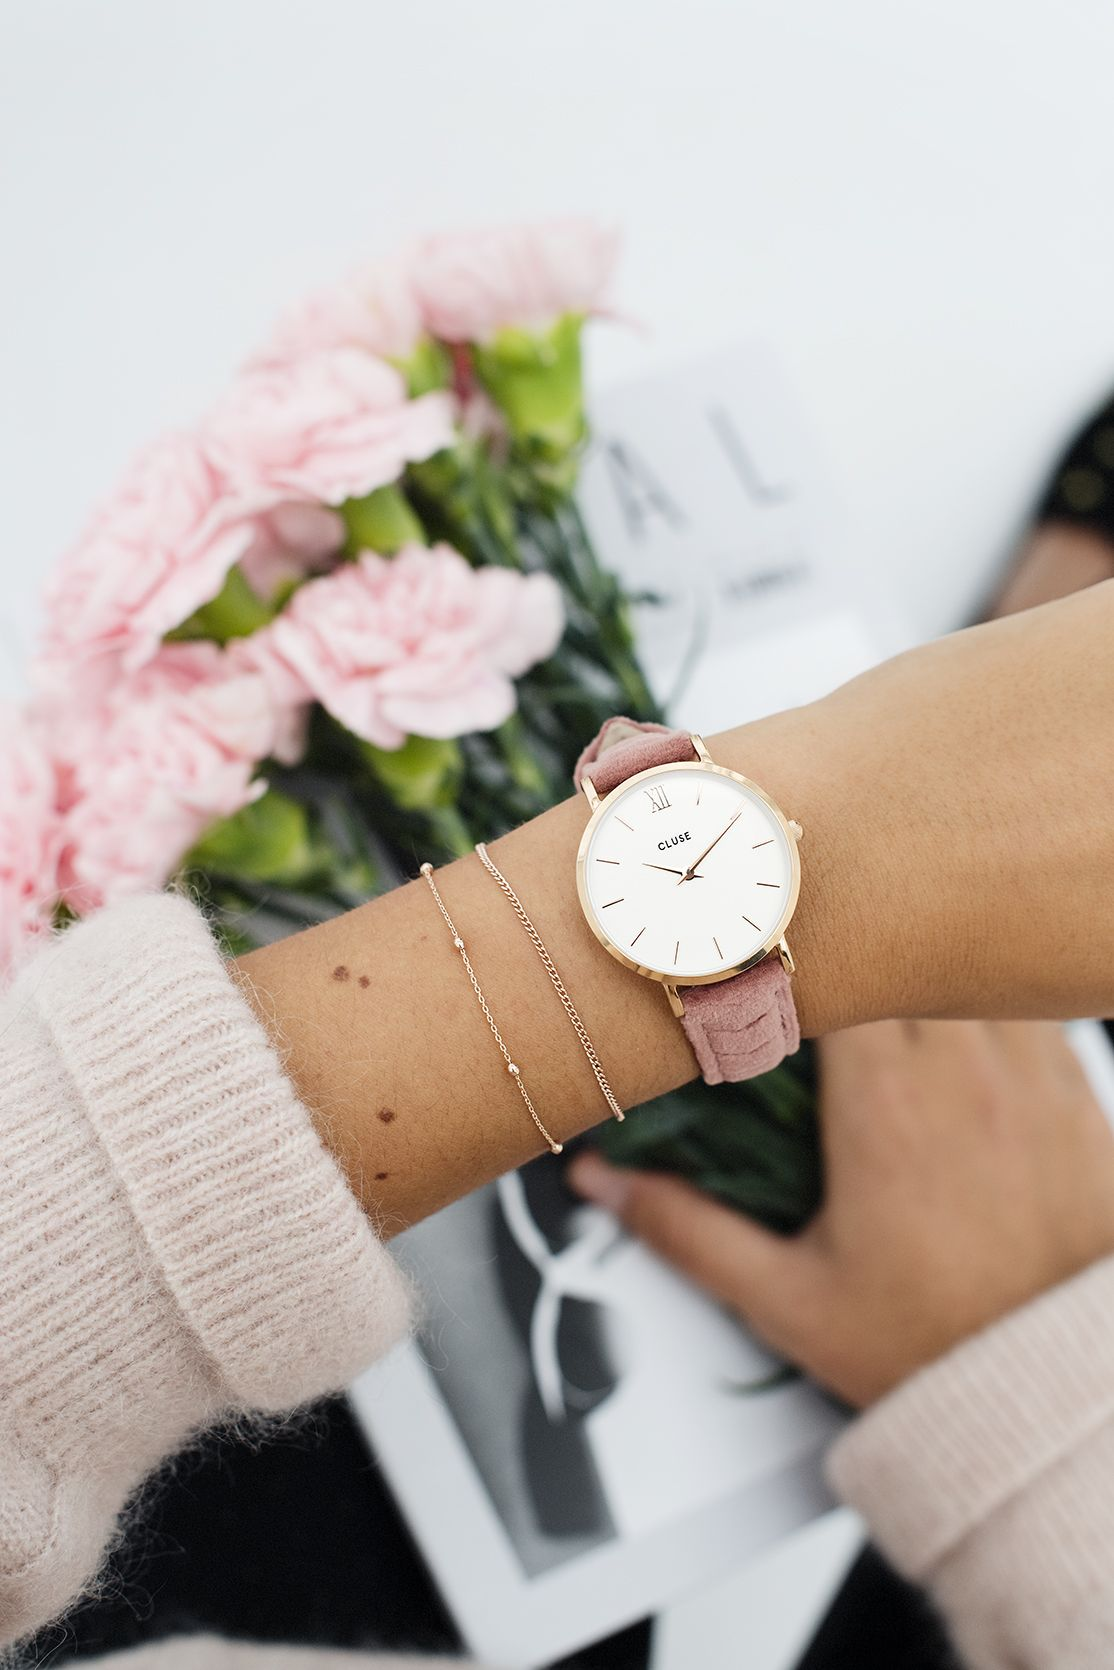 Cluse Minuit woman s rose gold leather strap cute ladies fashion style pink  velvet gift box mesh outfit small 33mm  Cluse  Minuit  velvet 501a566629